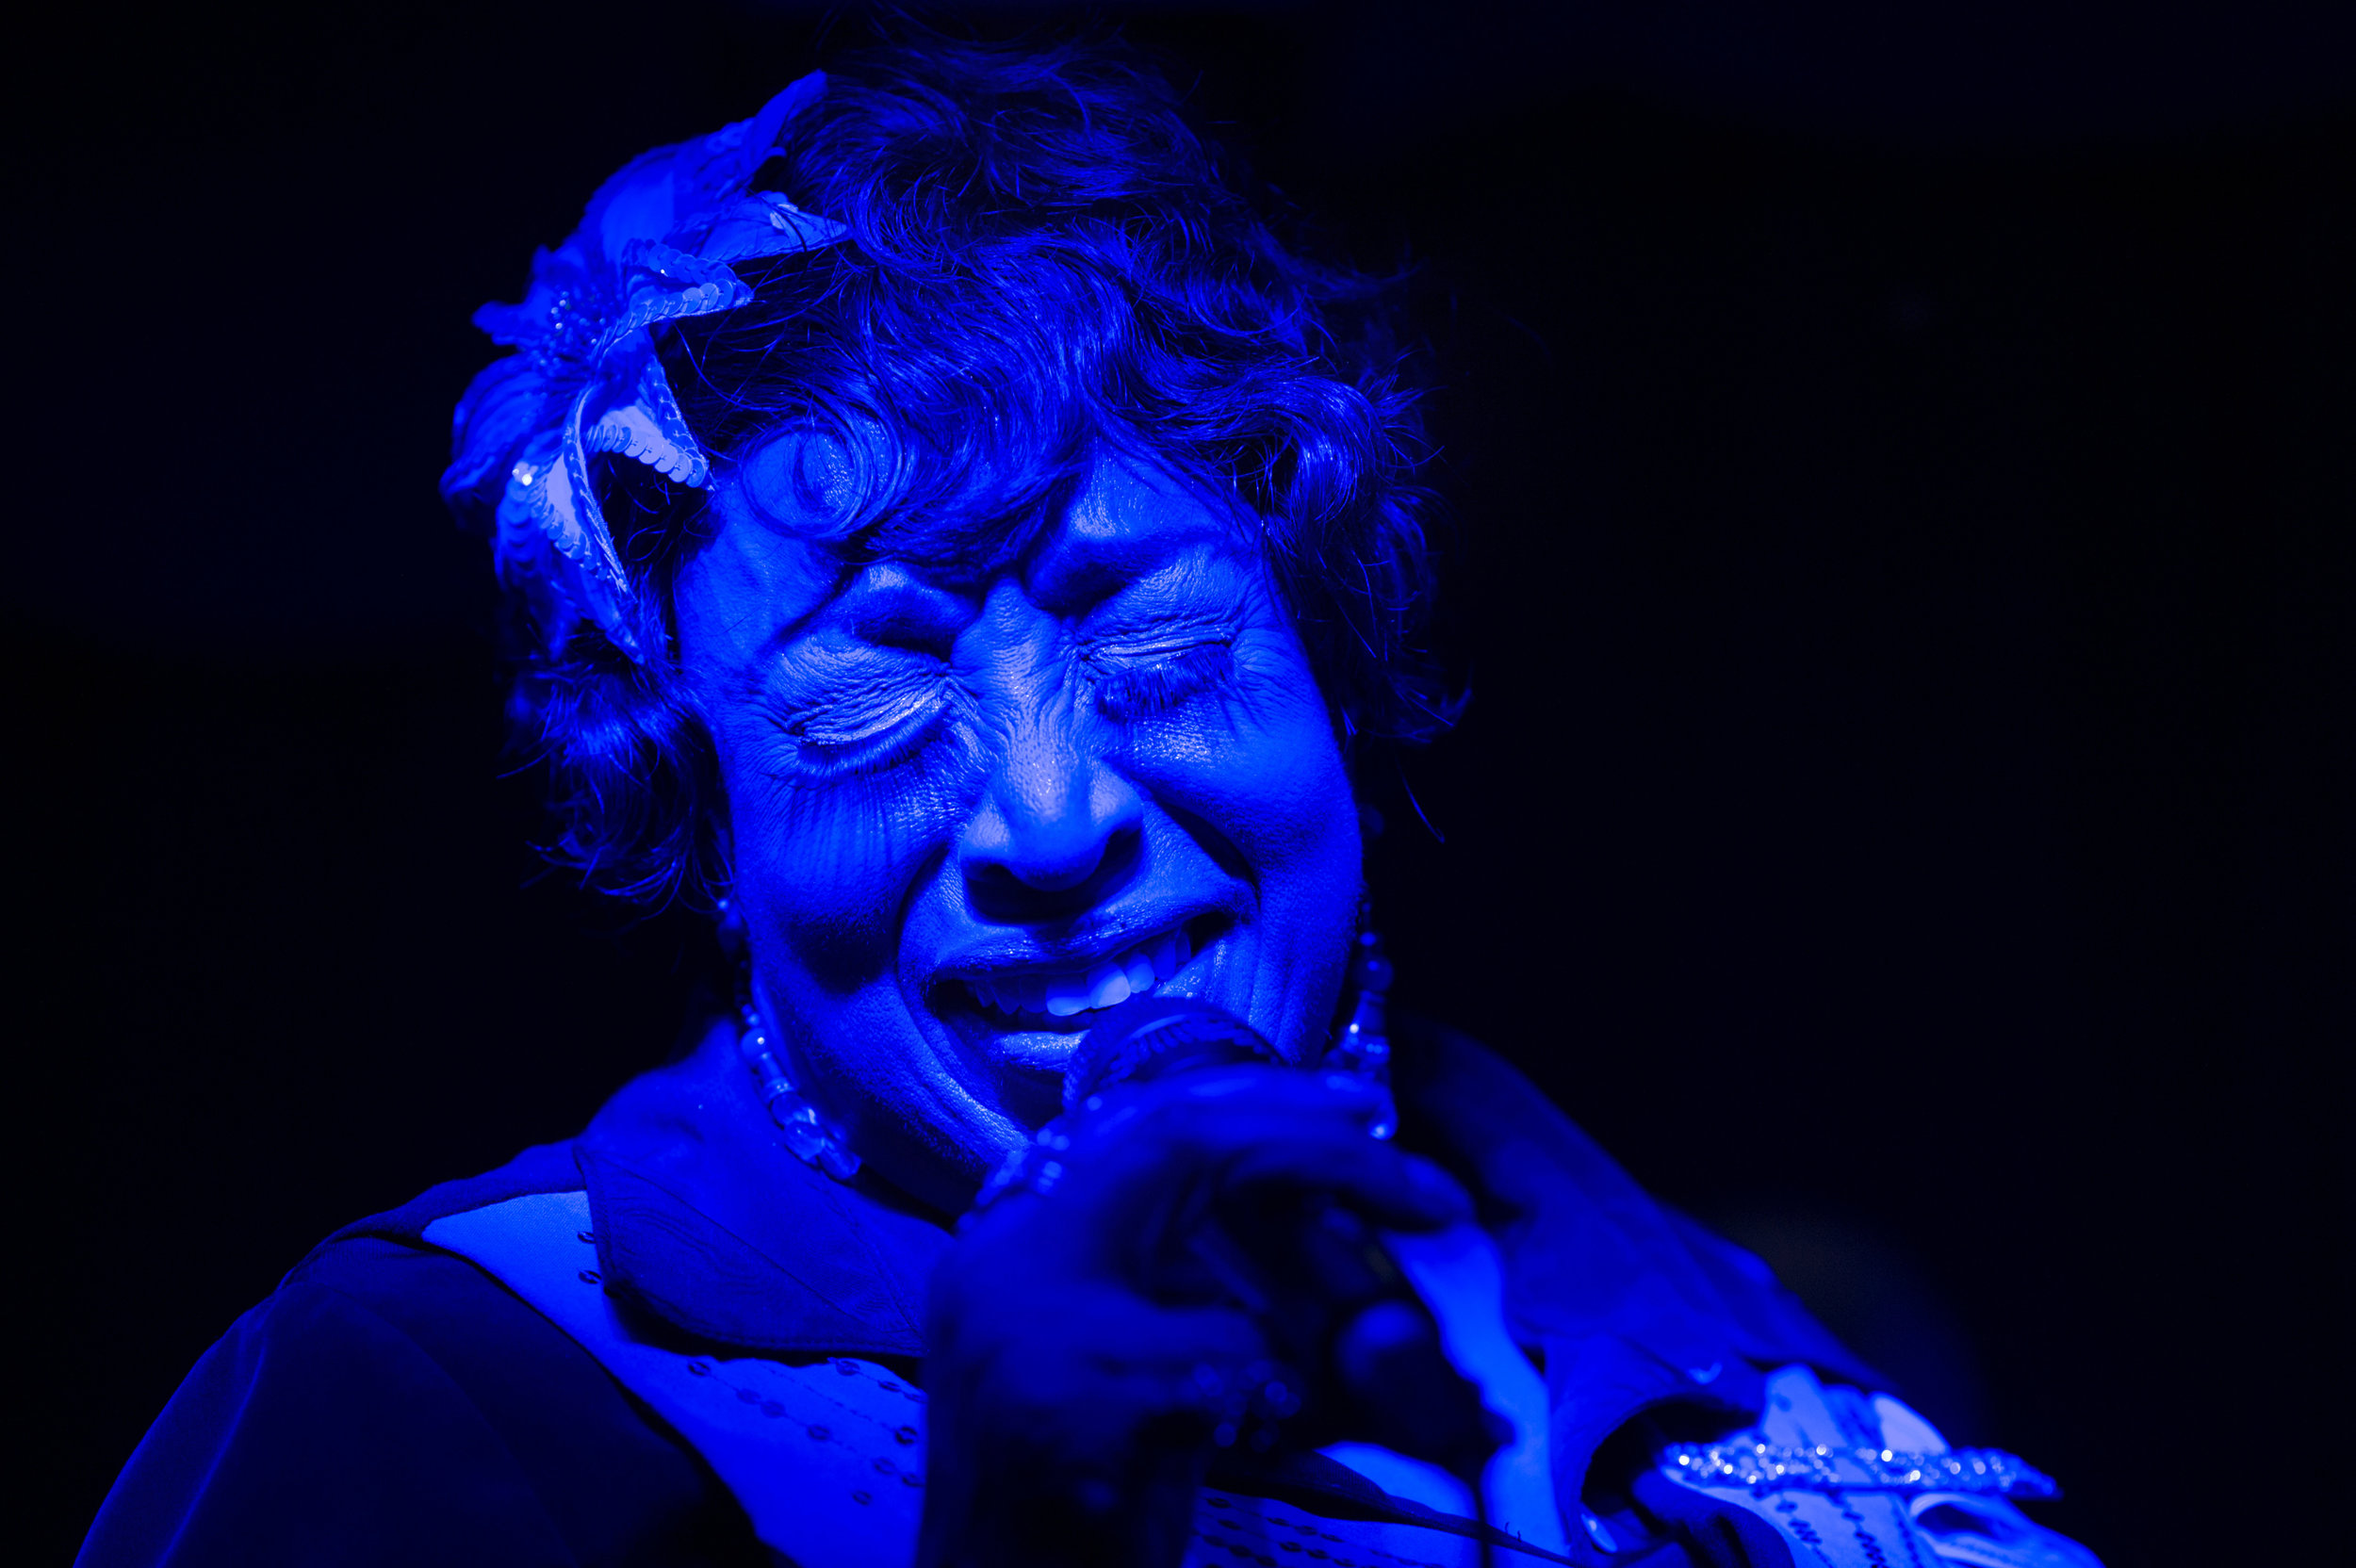 """Audrey Northington, who goes by """"Scat Diva"""" performs on Friday, Feb. 9, 2018 at Baker's Keyboard Lounge in Detroit. Northington has been singing at Baker's for 27 years."""